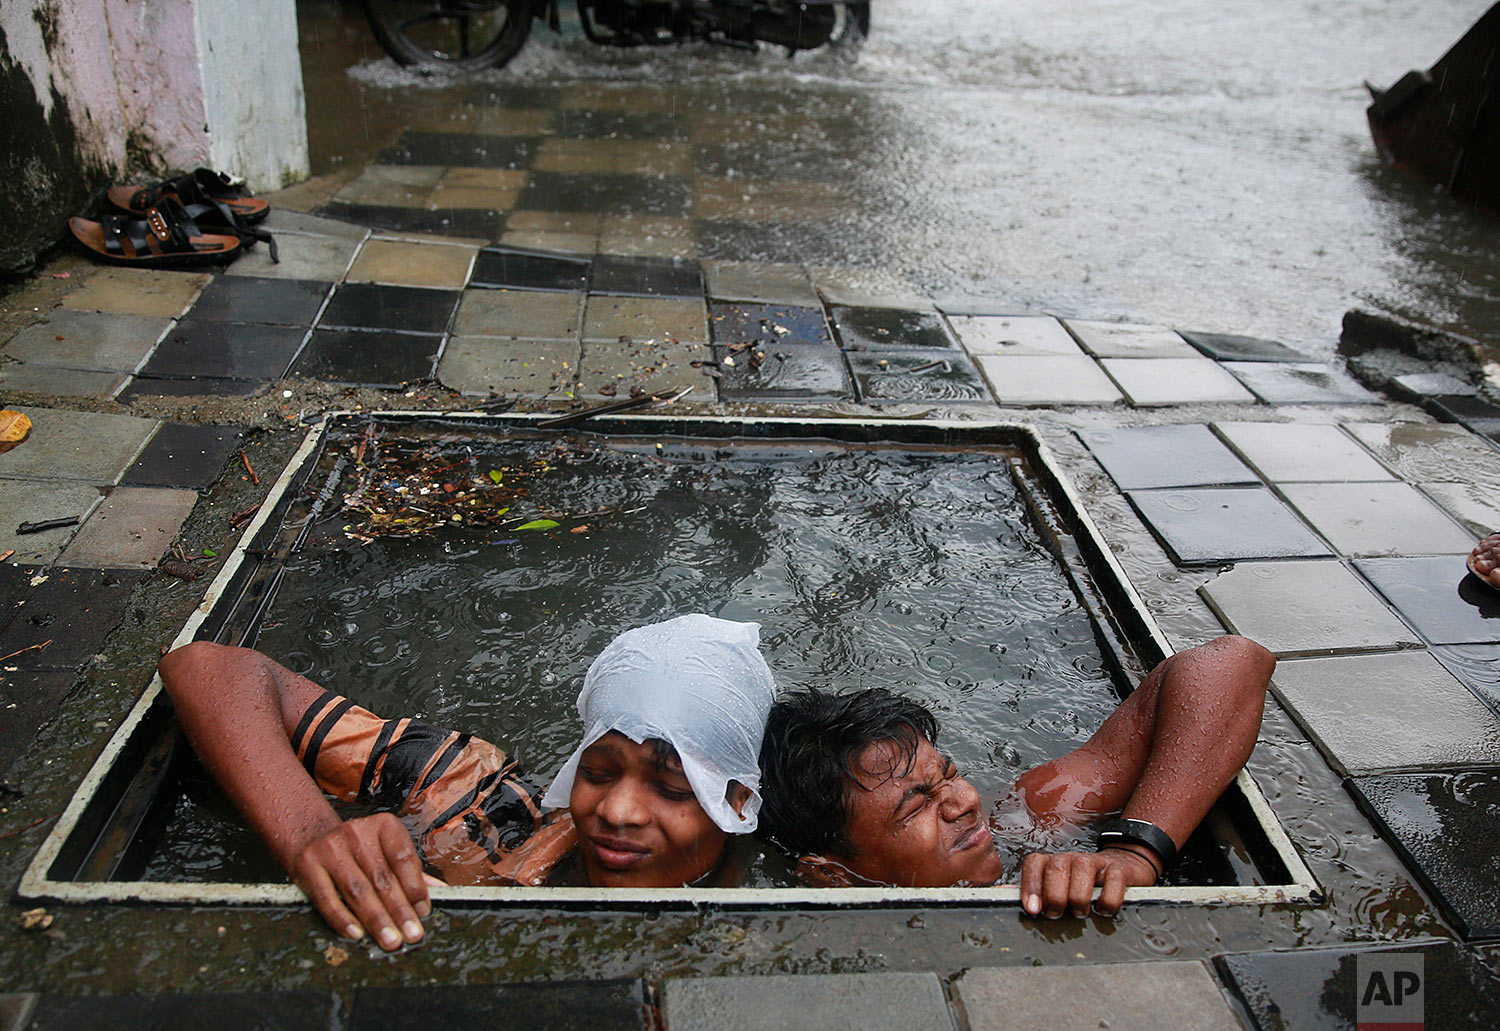 Municipal workers try to retrieve the lid of a manhole to prevent pedestrians from falling in, in Mumbai, India, Wednesday, Sept. 20, 2017. Incessant rainfall in India's commercial capital has affected air and rail traffic, and schools and colleges remained shut for the day. (AP Photo/Rafiq Maqbool)